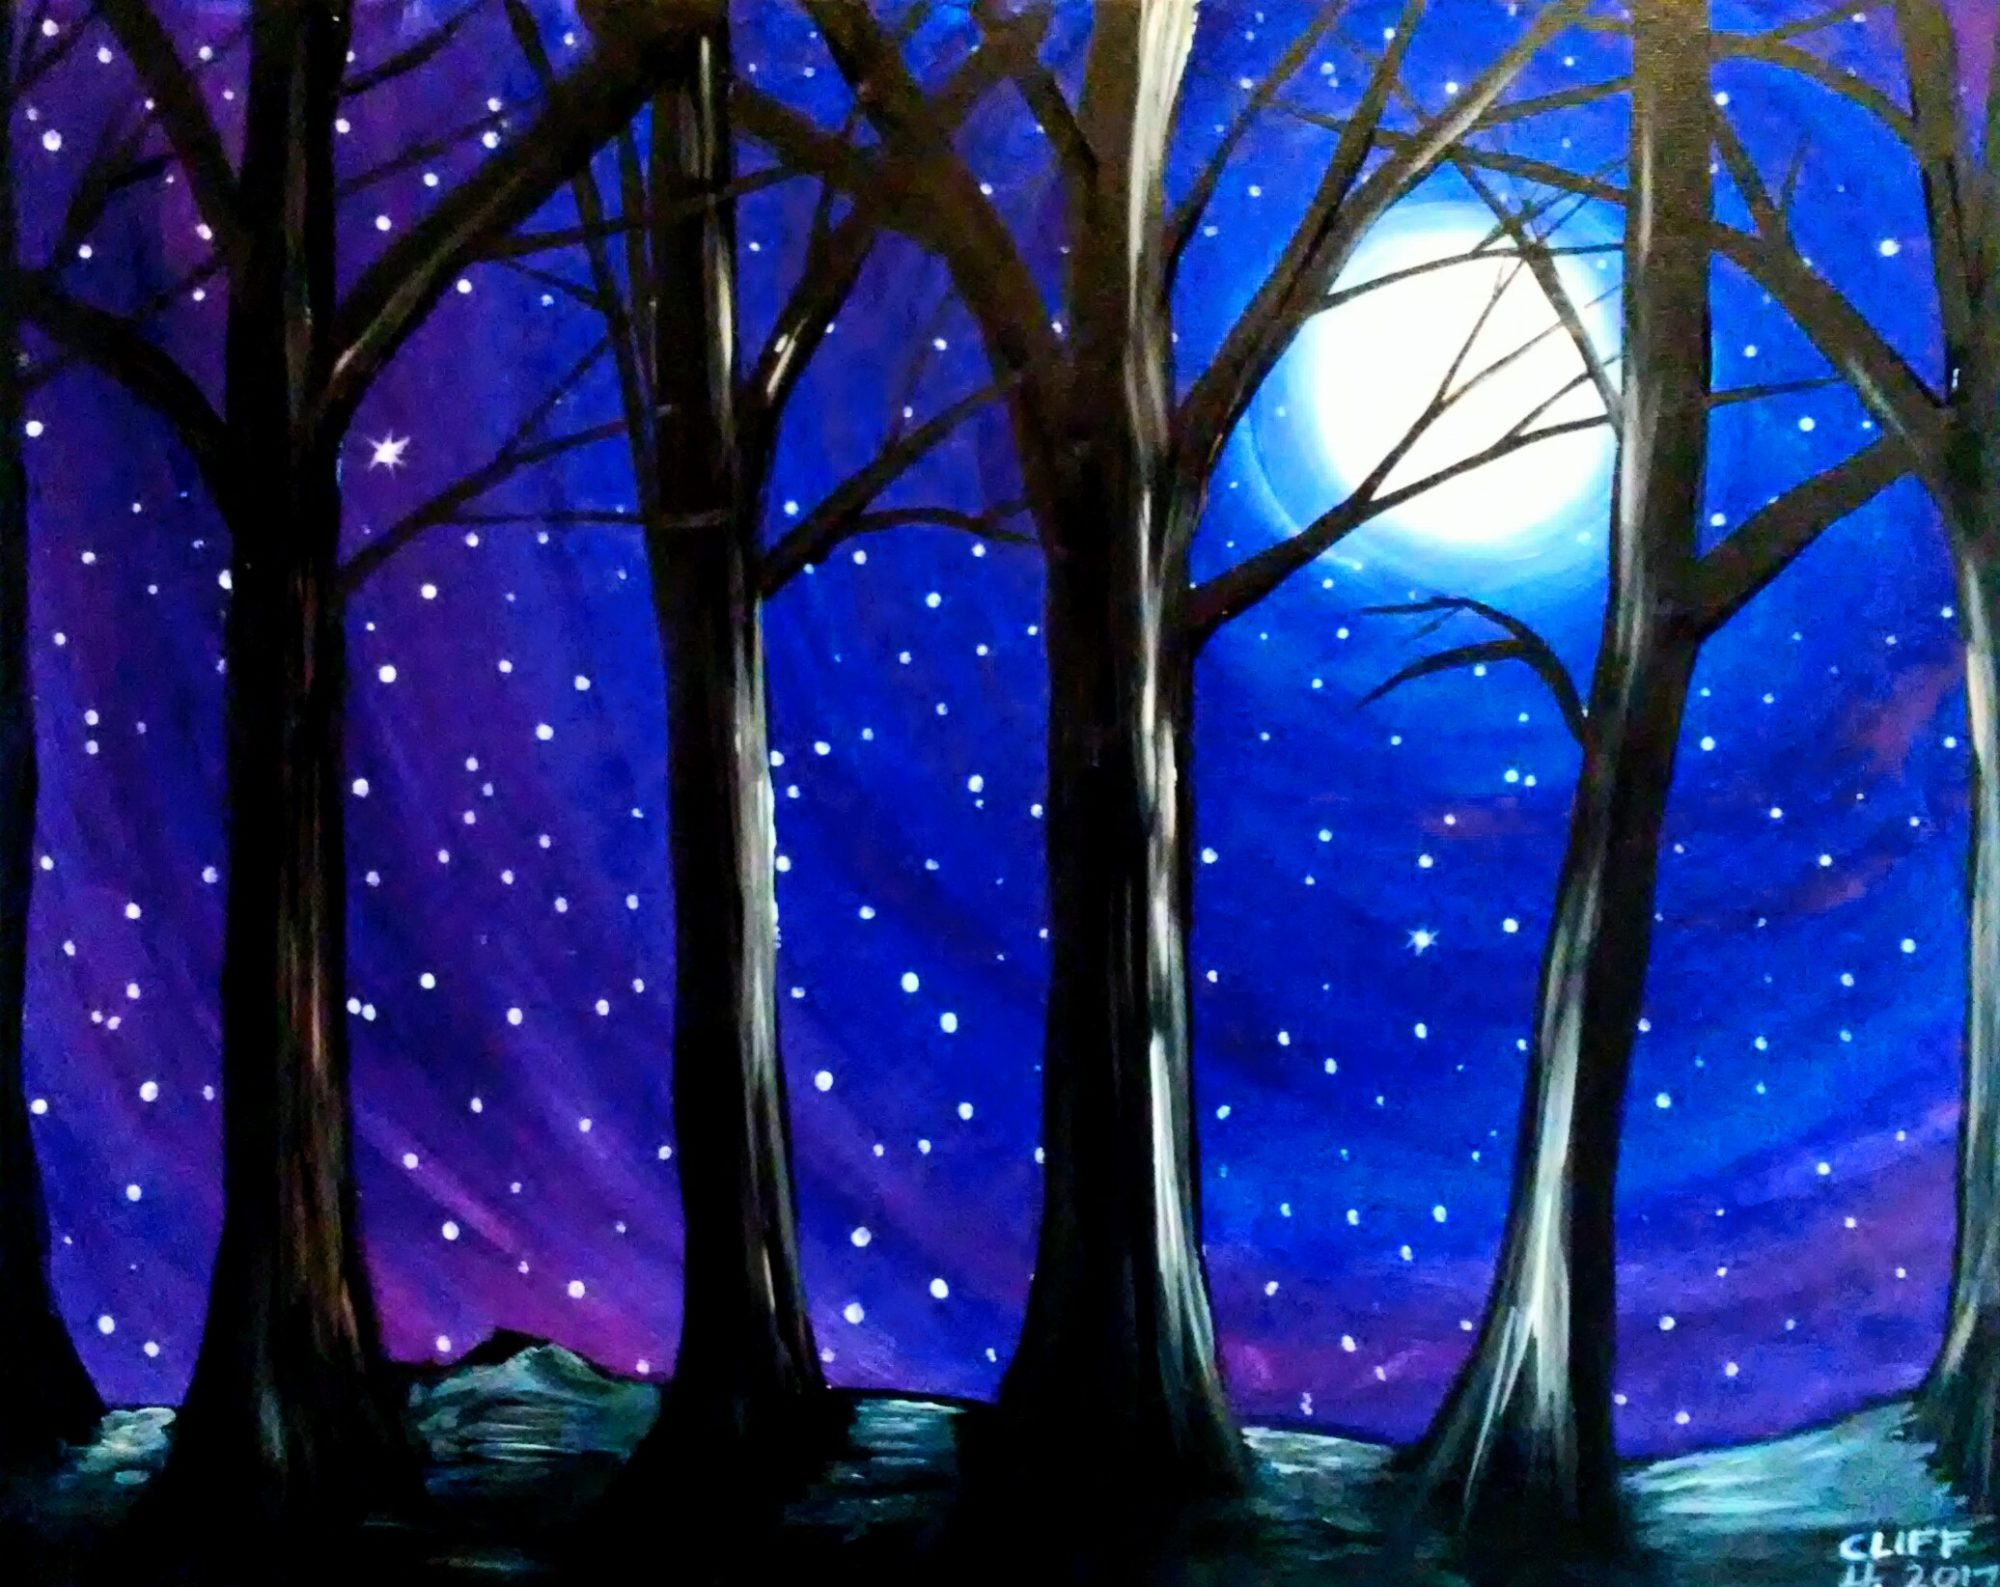 A60 Moon through the trees - Sip and Paint Parties in Bartlett, IL